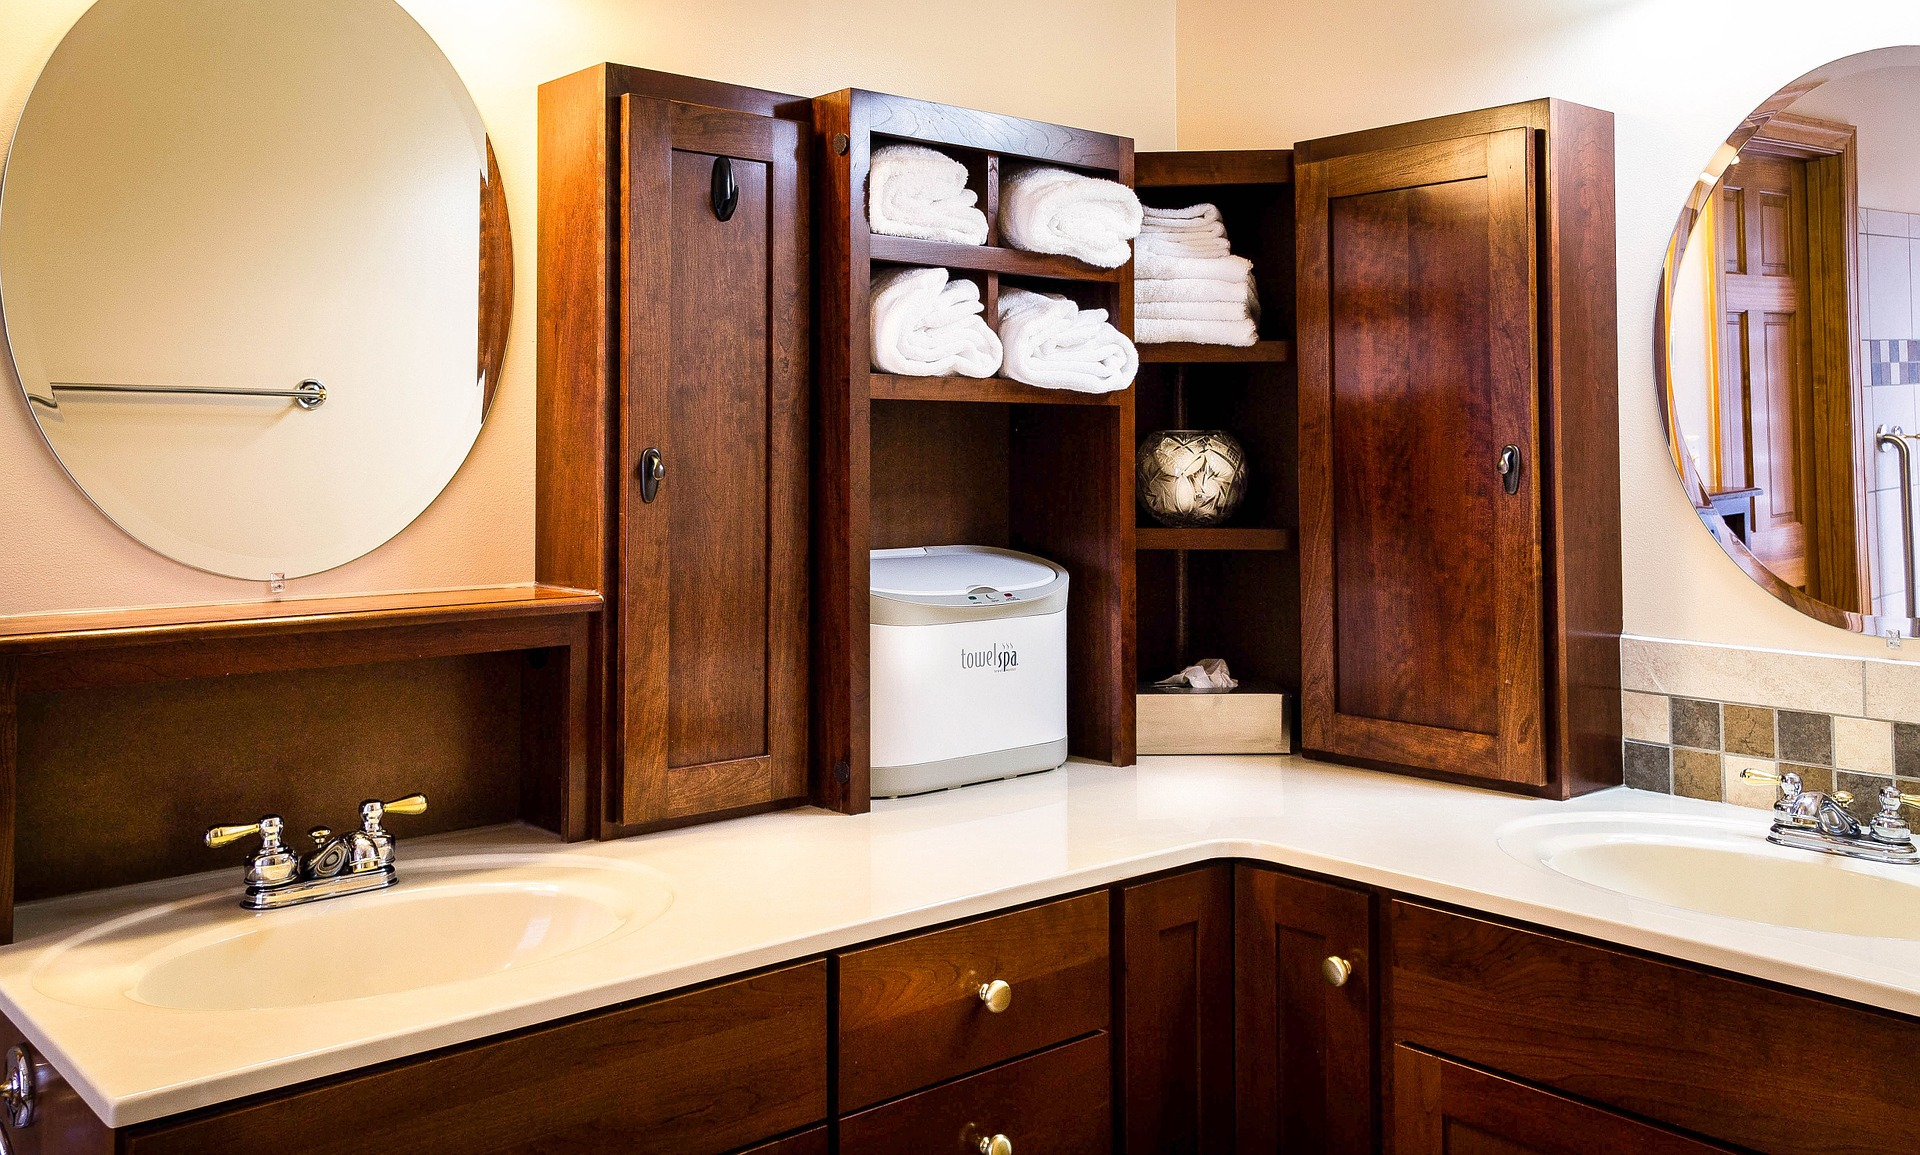 Friedman Realty Associates, upscale bathroom with backsplash, upgraded fixtures and cabinets